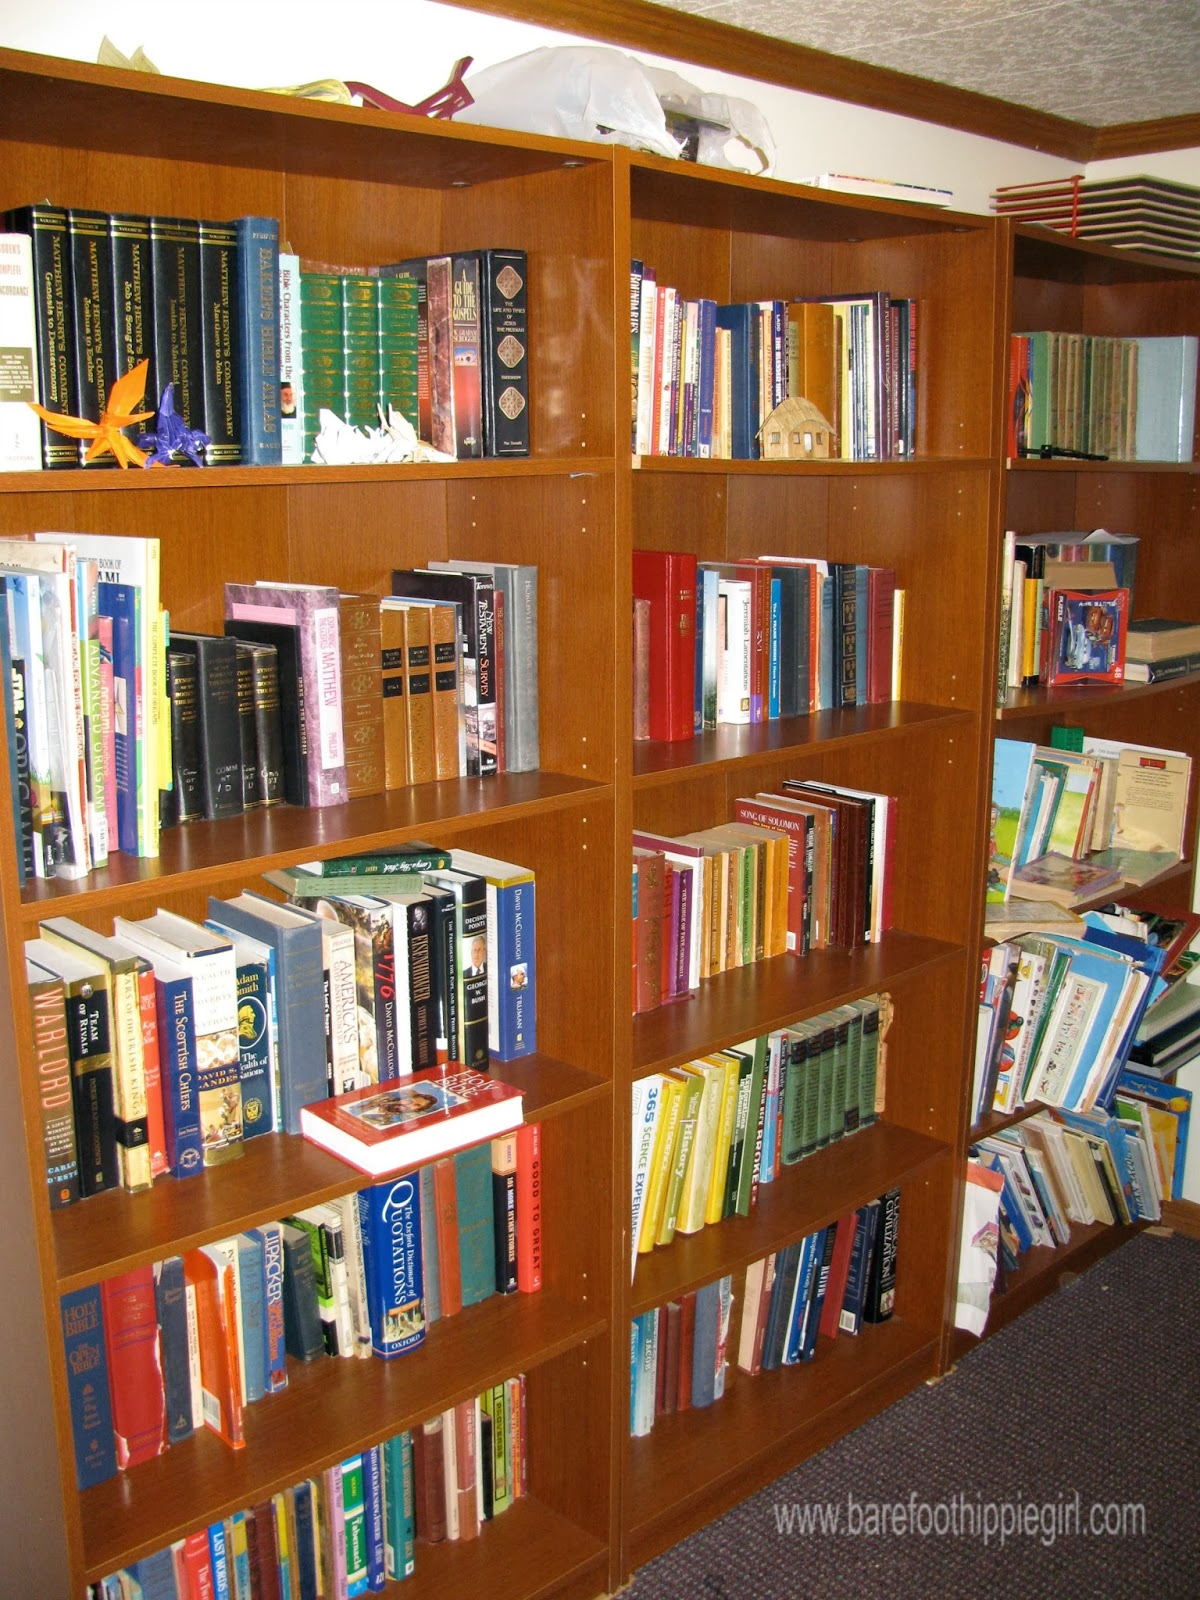 It is packed with a whole lot of variety. Kids books, novels, textbooks,  commentaries, classics, origami, uglies-but worthwhile. It is just now full  up.